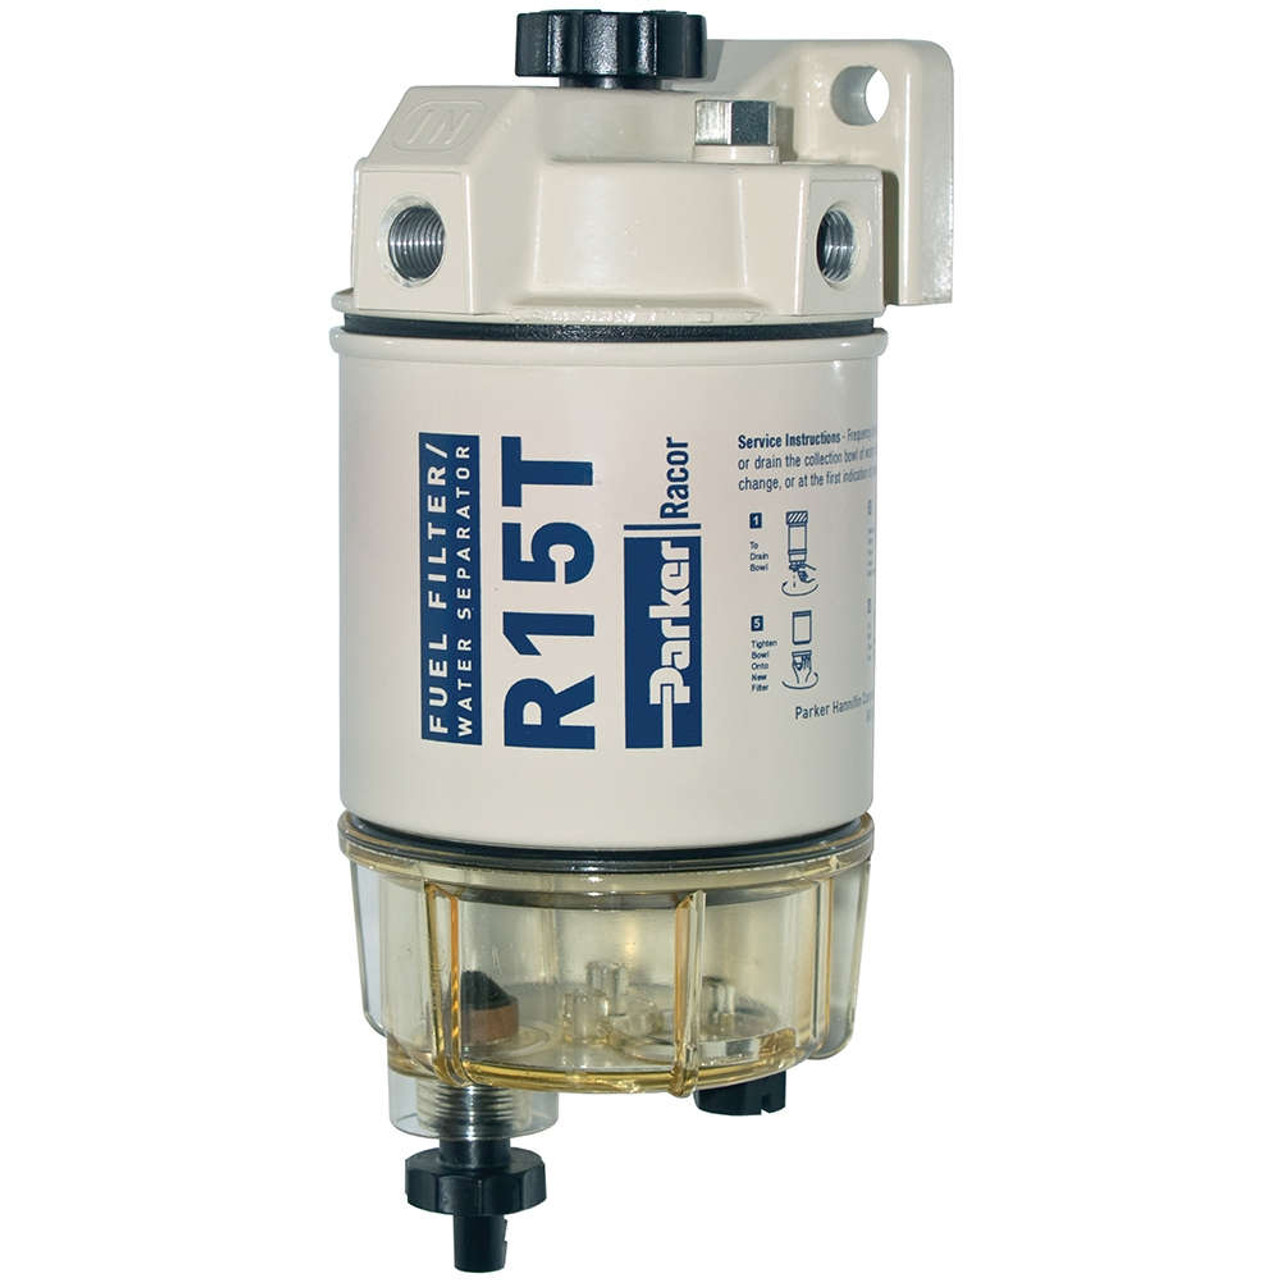 Racor 200 Series 15 GPH Low Flow Diesel Fuel Filter/Water Separator 215  Filter Assembly